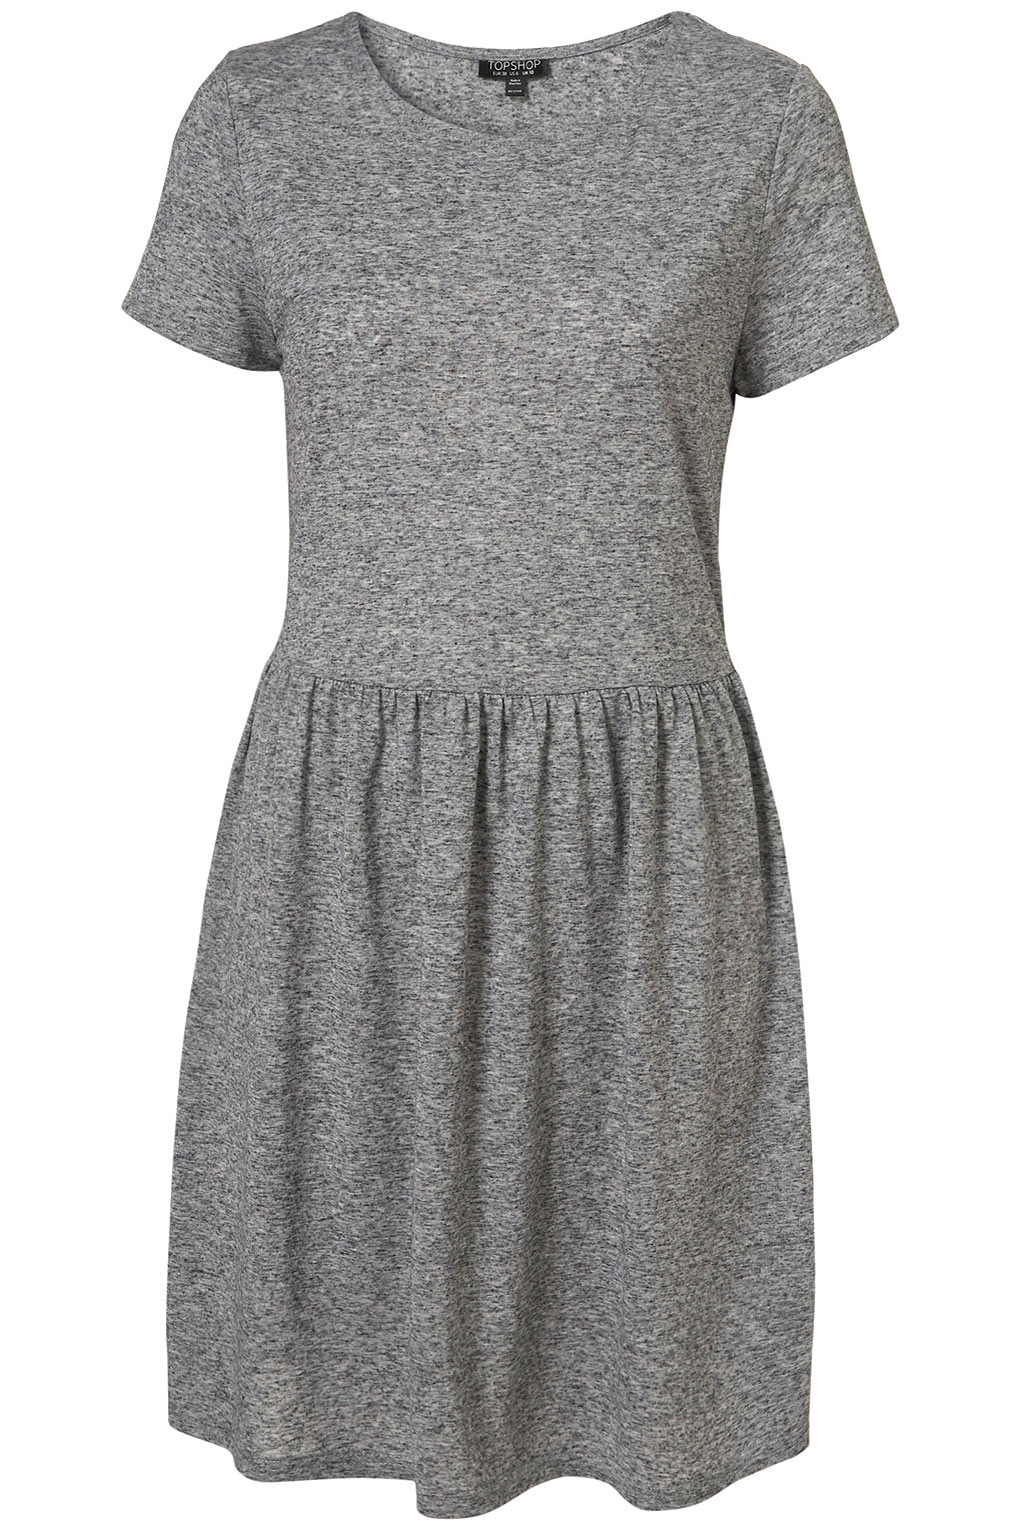 Topshop Speckle T Shirt Dress In Gray Lyst